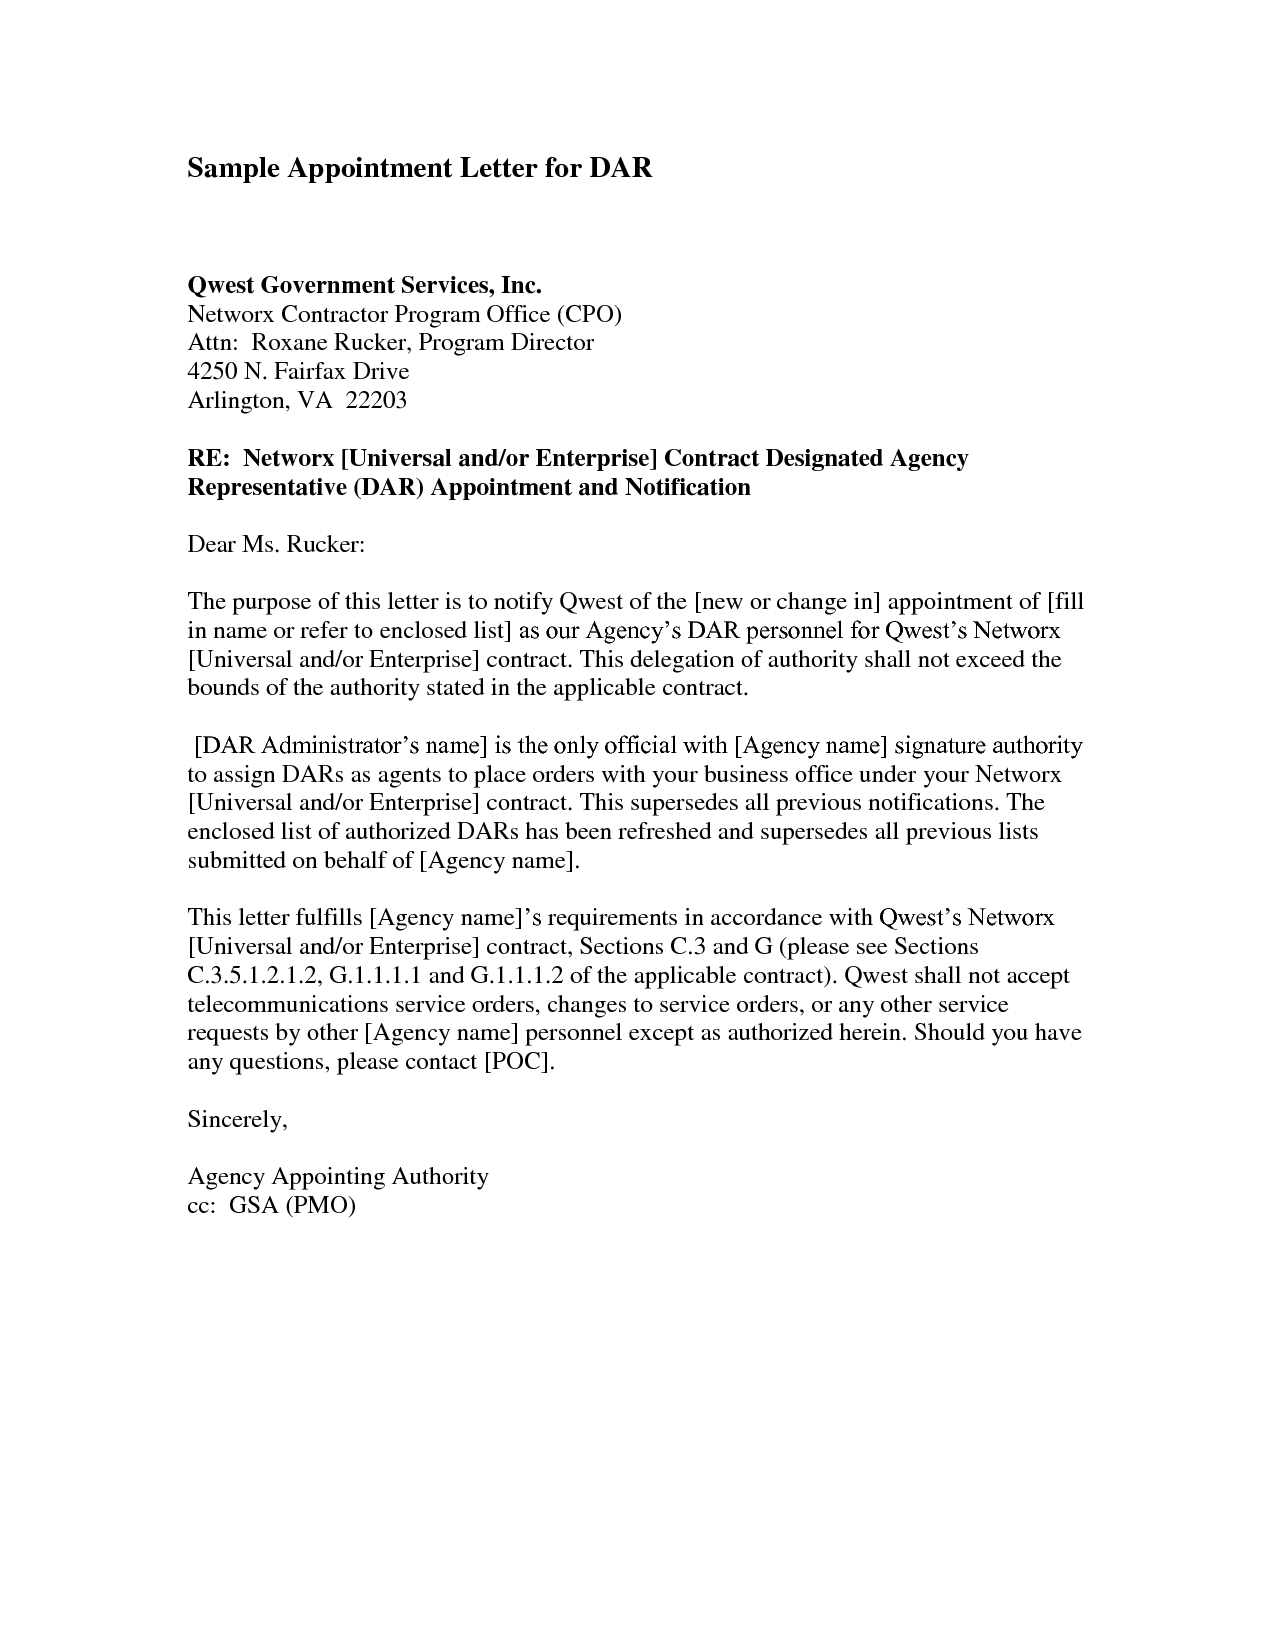 Board Member Removal Letter Template - Trustee Appointment Letter Director Trustee is Appointed or